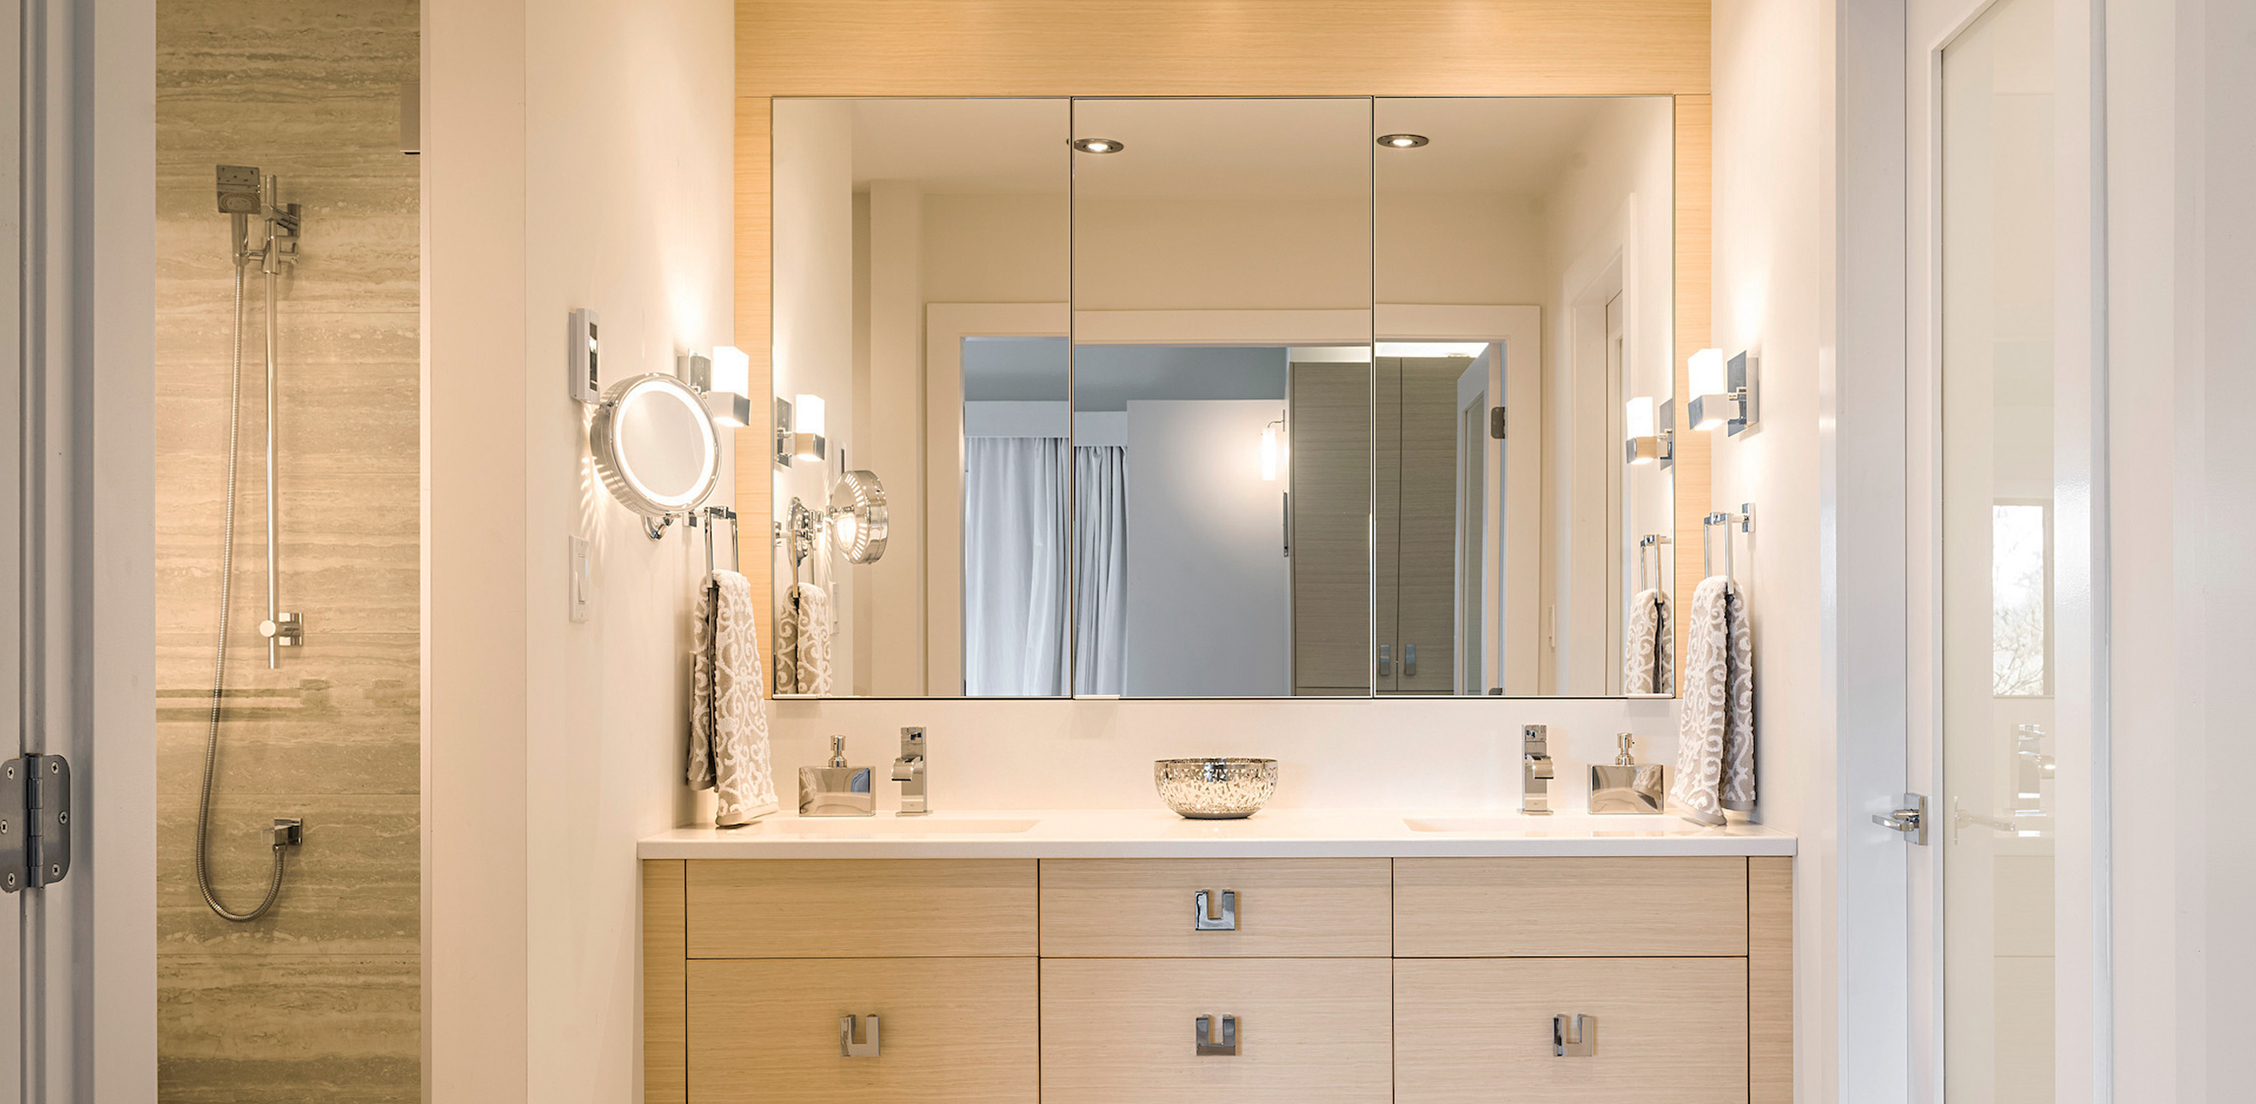 Bring us your plan for your dream retreat and we will bring your style bathroom to you.